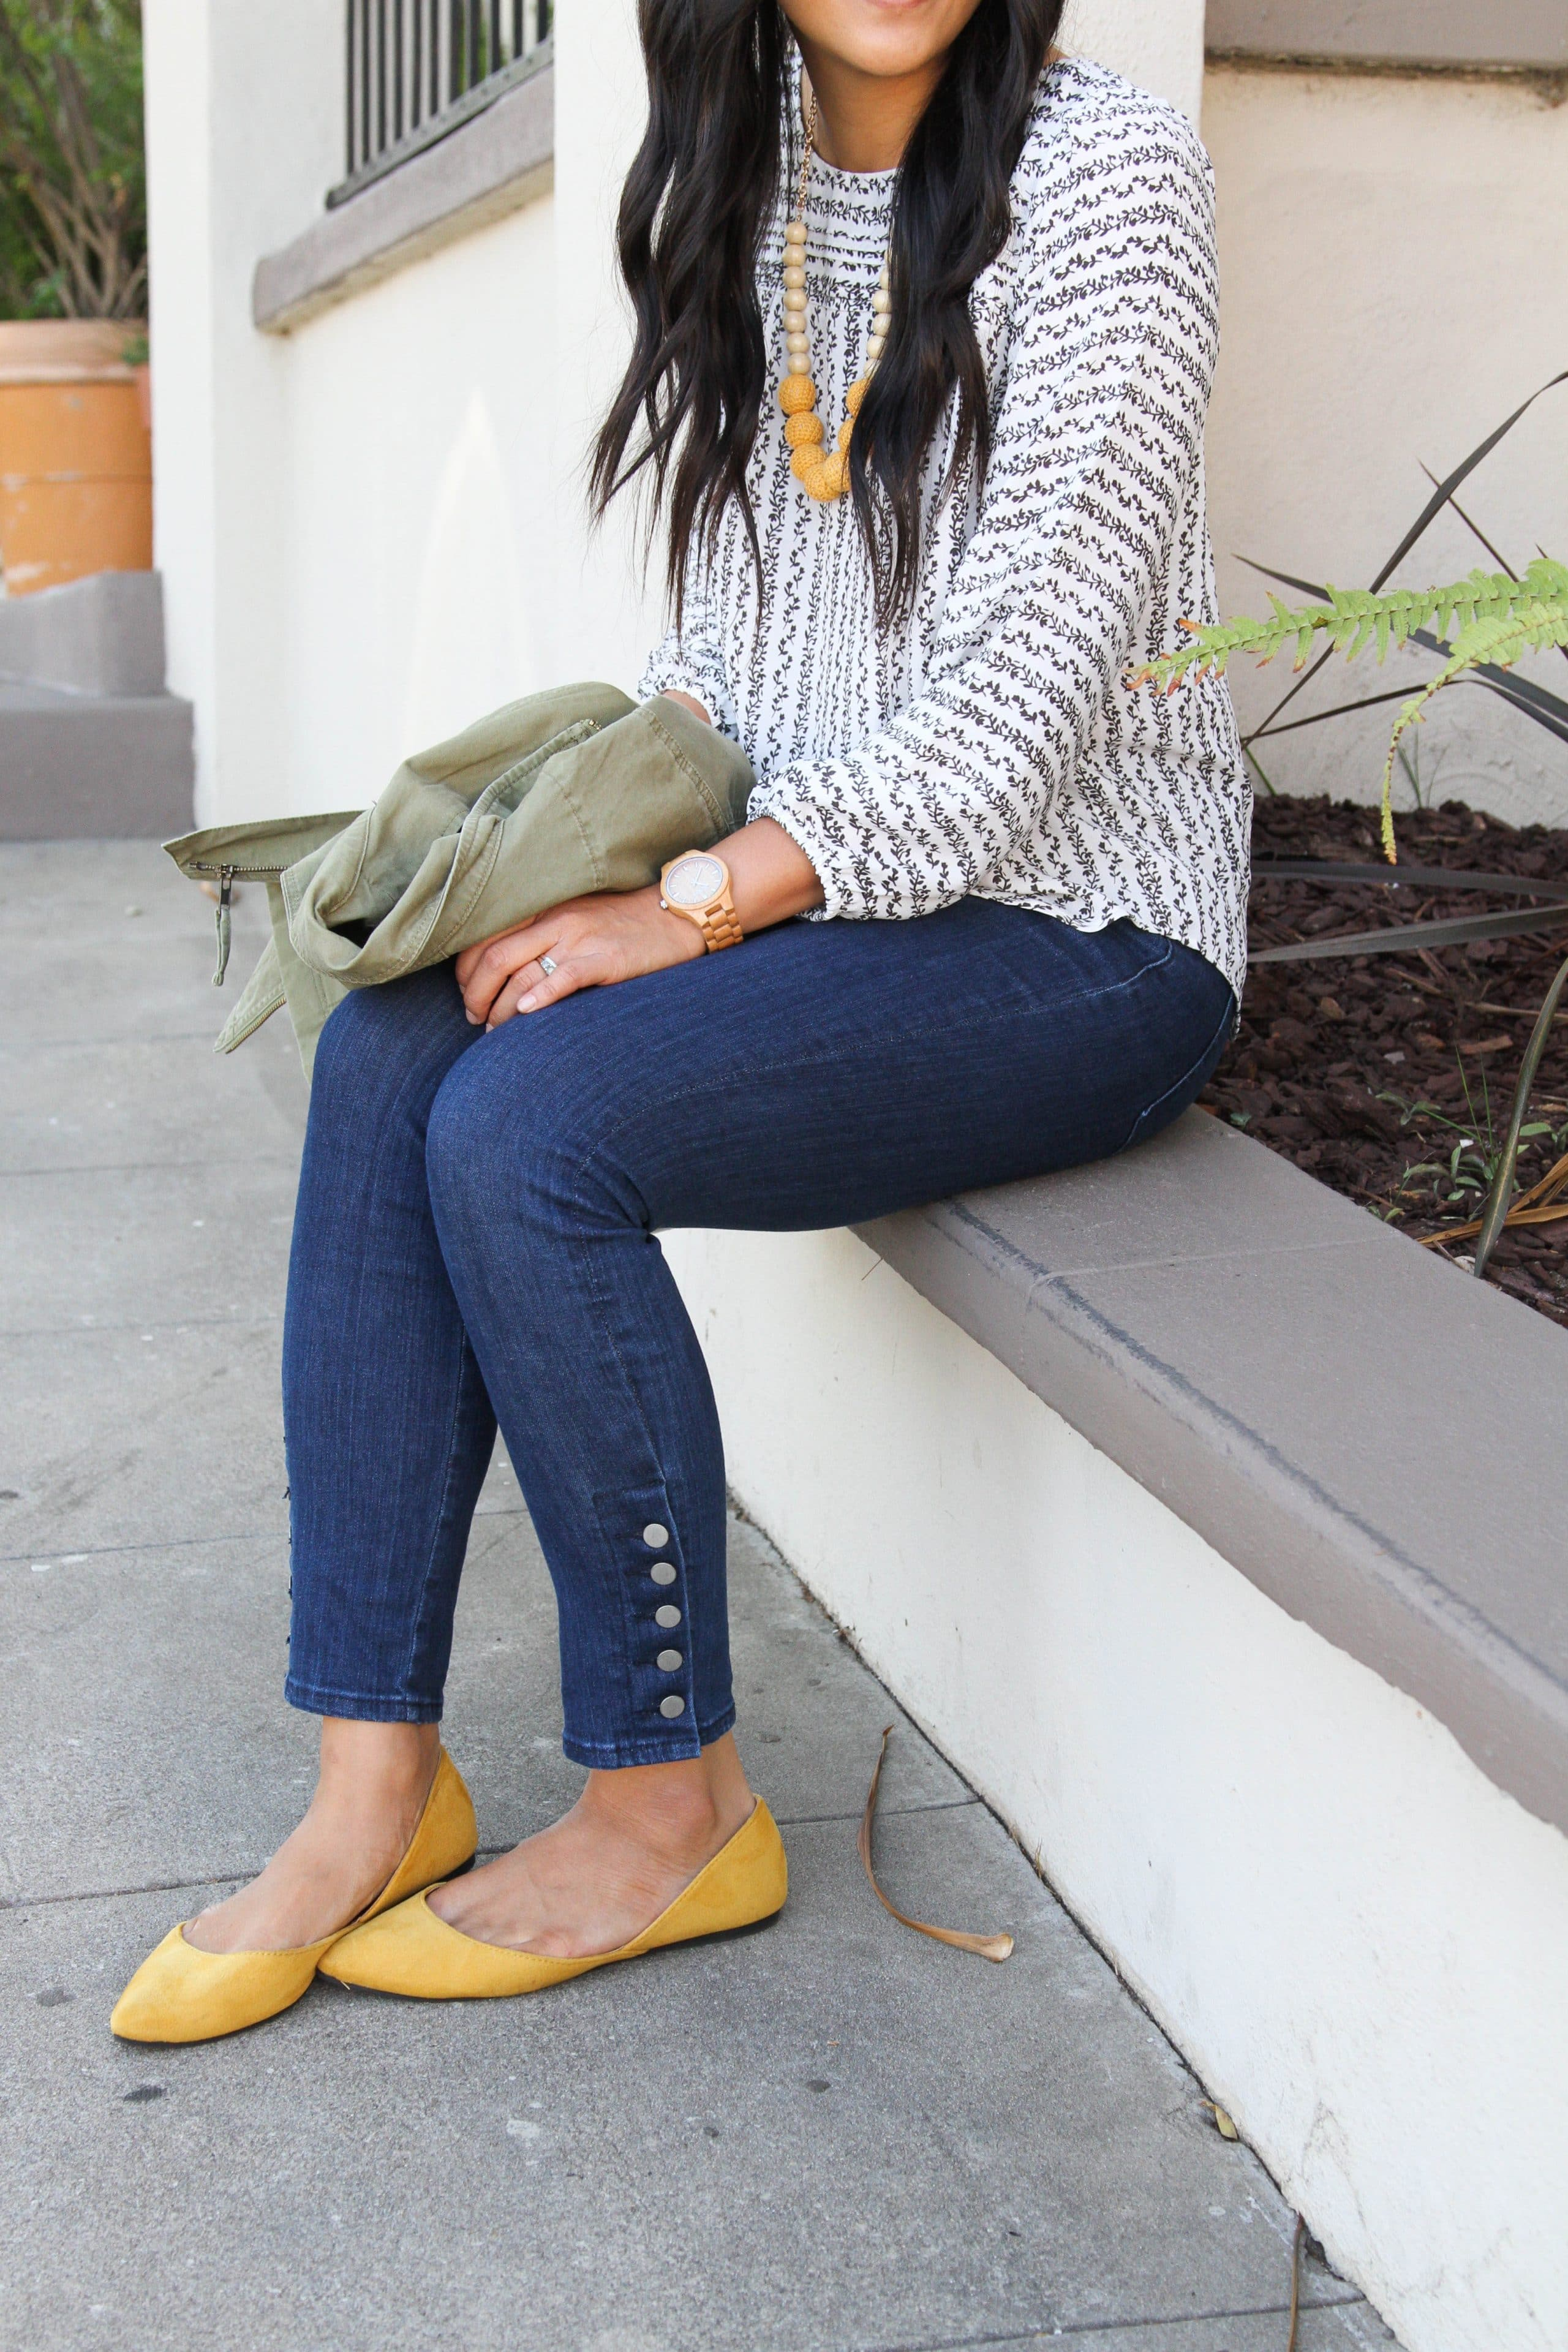 dab6273f43f ... Skinny jeans with buttons + White blouse with flowers + Mustard Flats +  Utility Jacket ...